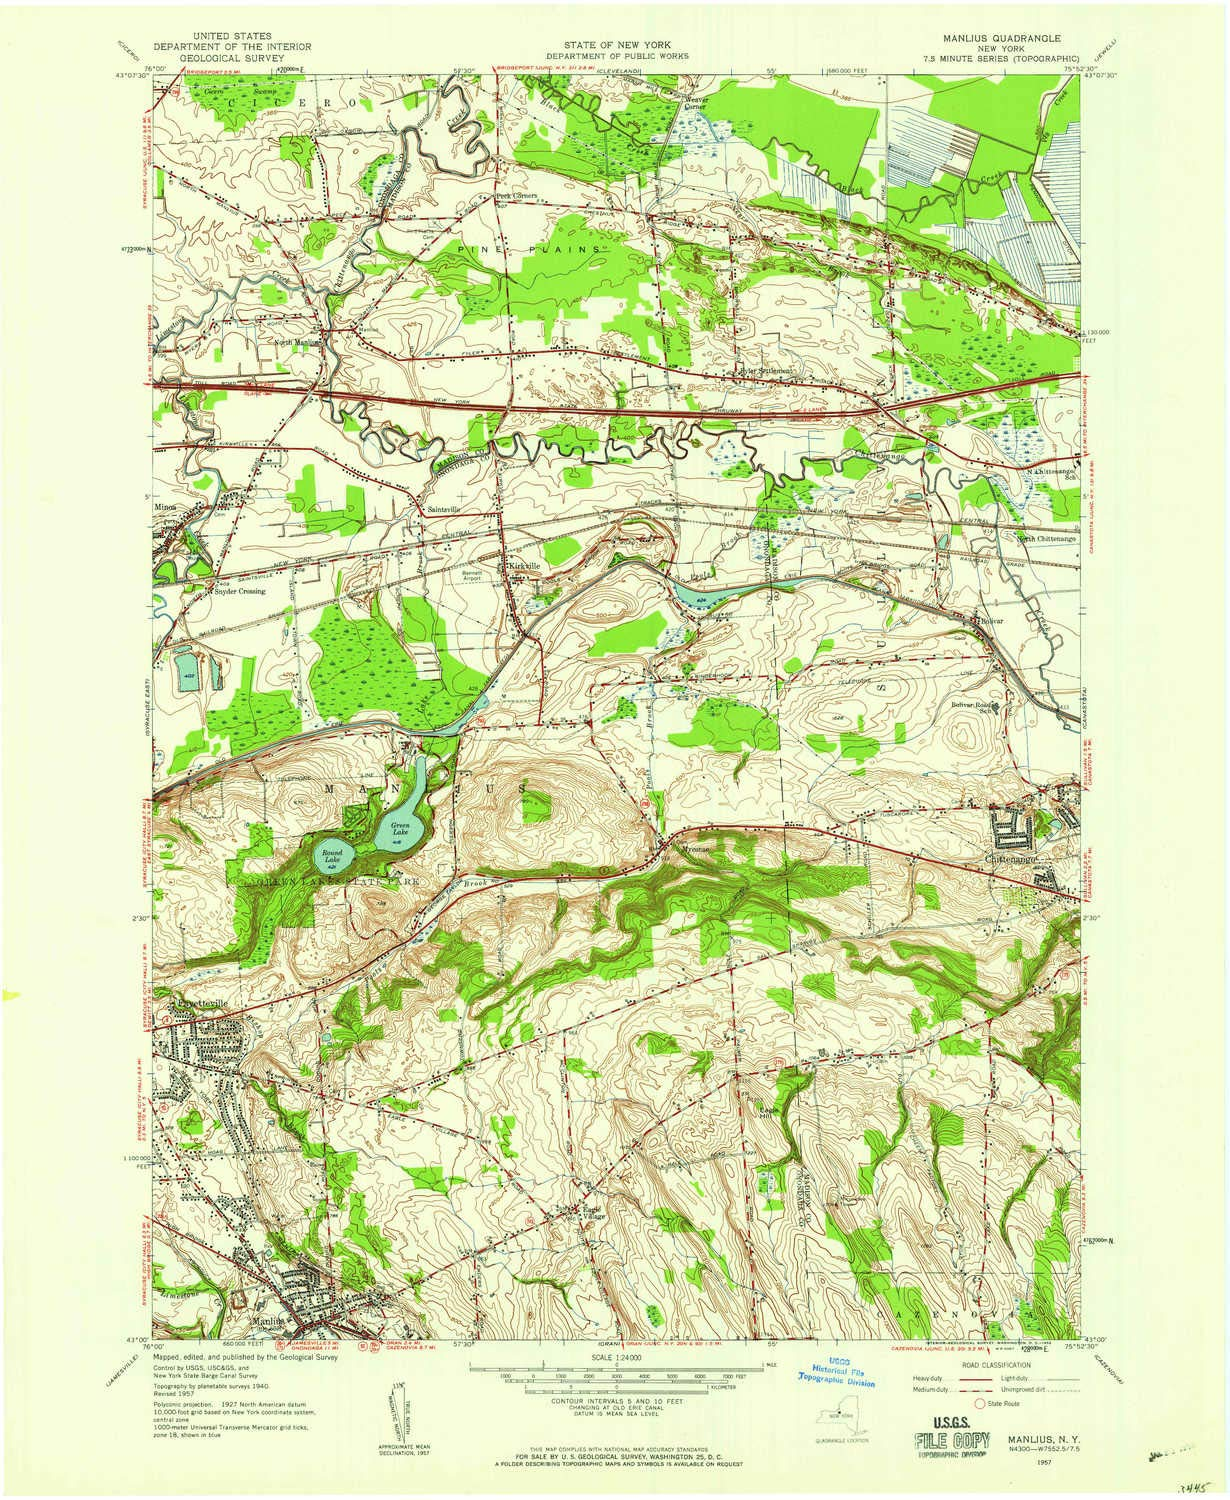 Topographic Map New York State.Amazon Com Yellowmaps Manlius Ny Topo Map 1 24000 Scale 7 5 X